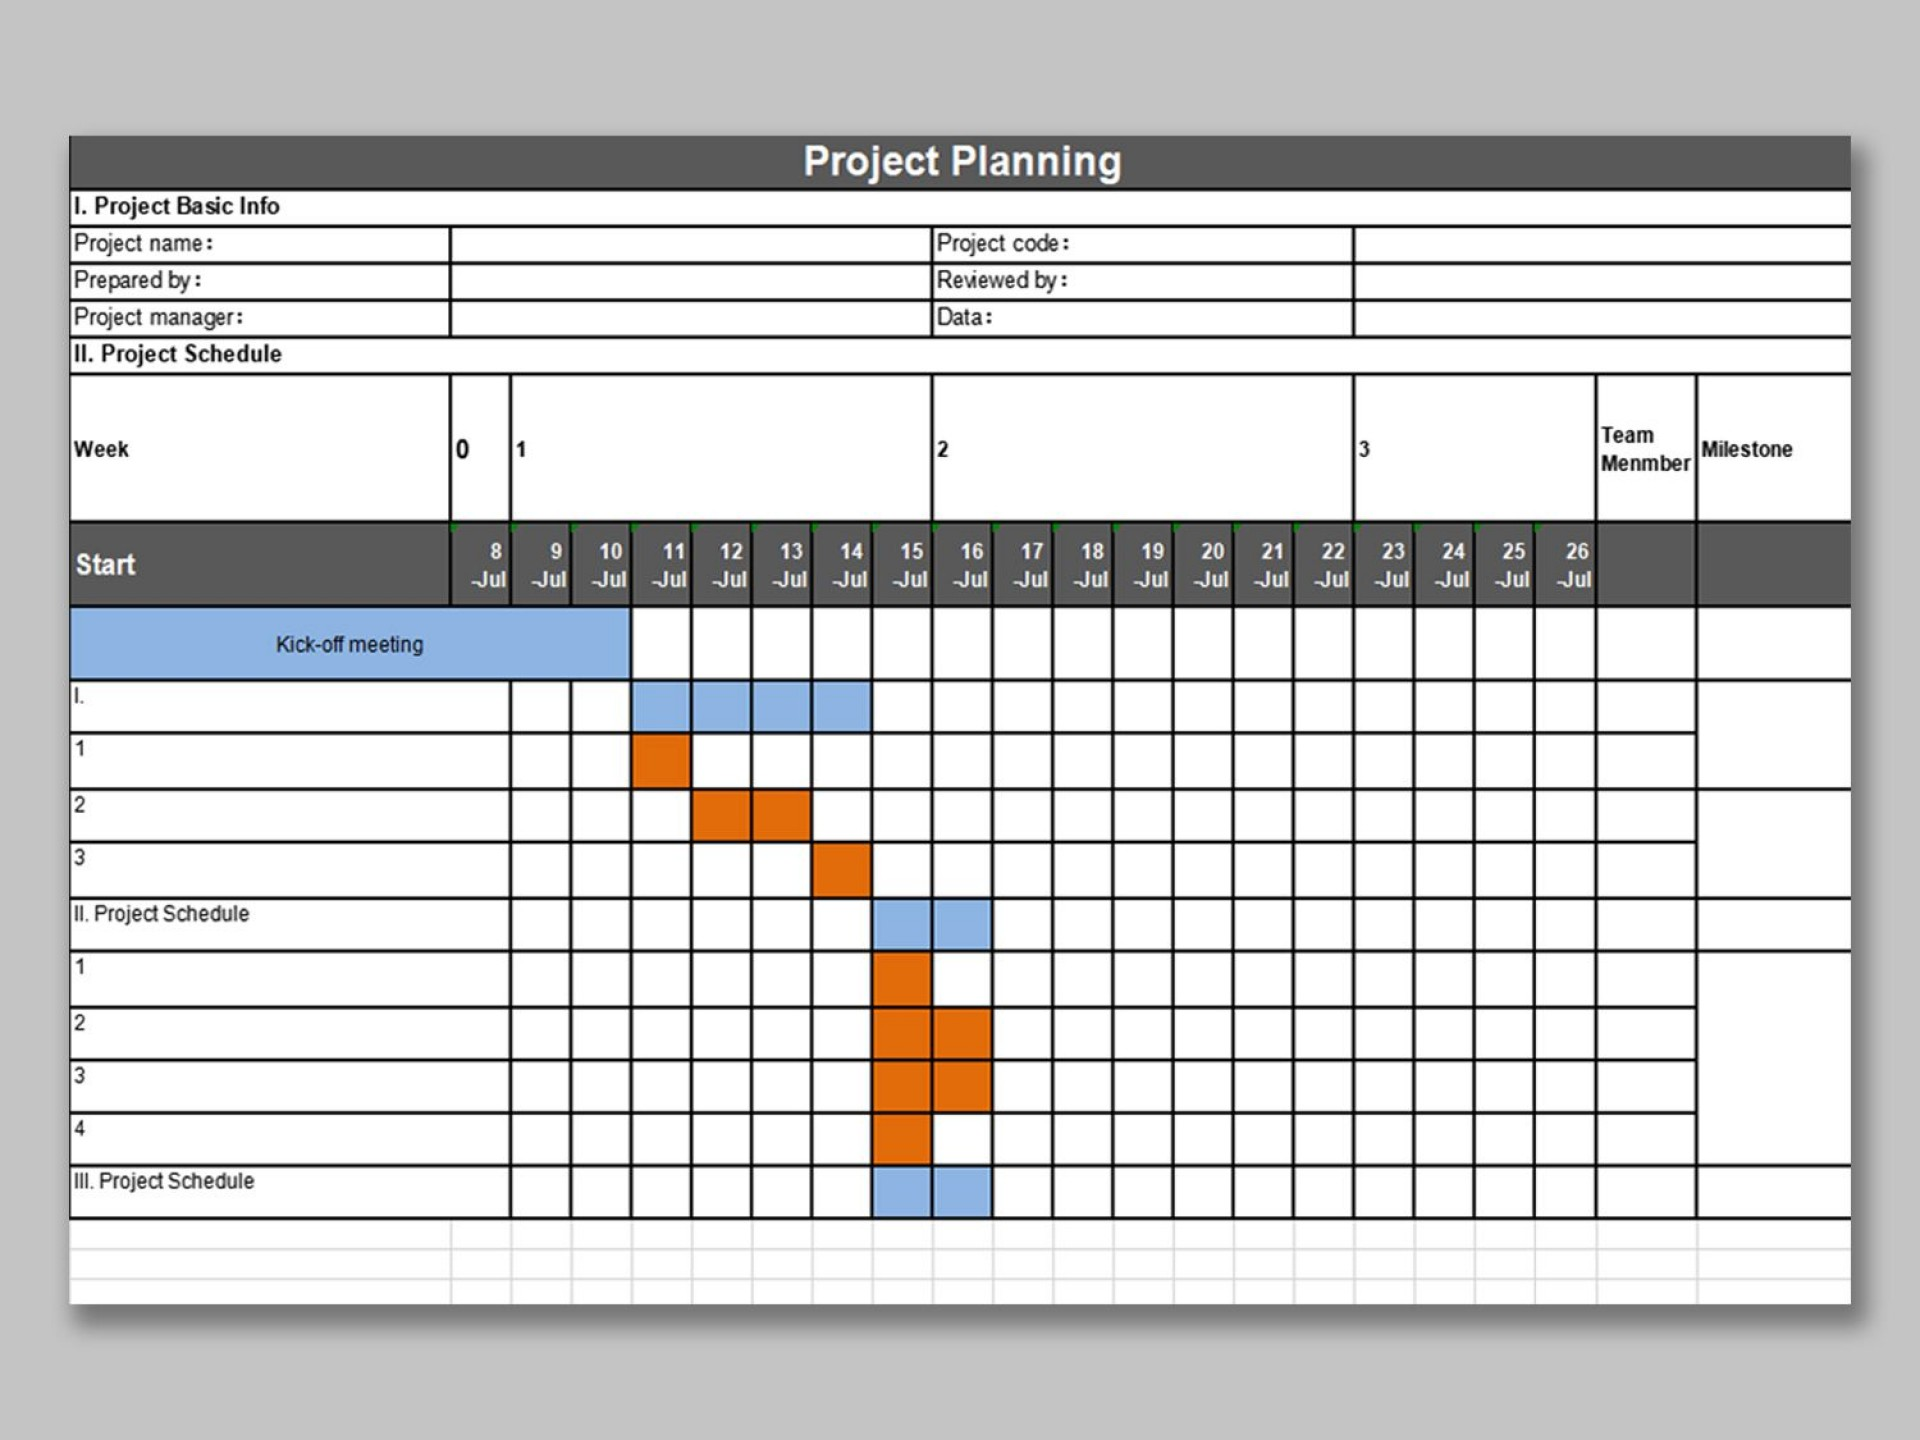 000 Amazing Project Planning Template Free Download Image  Software Management Plan Excel Xl1920